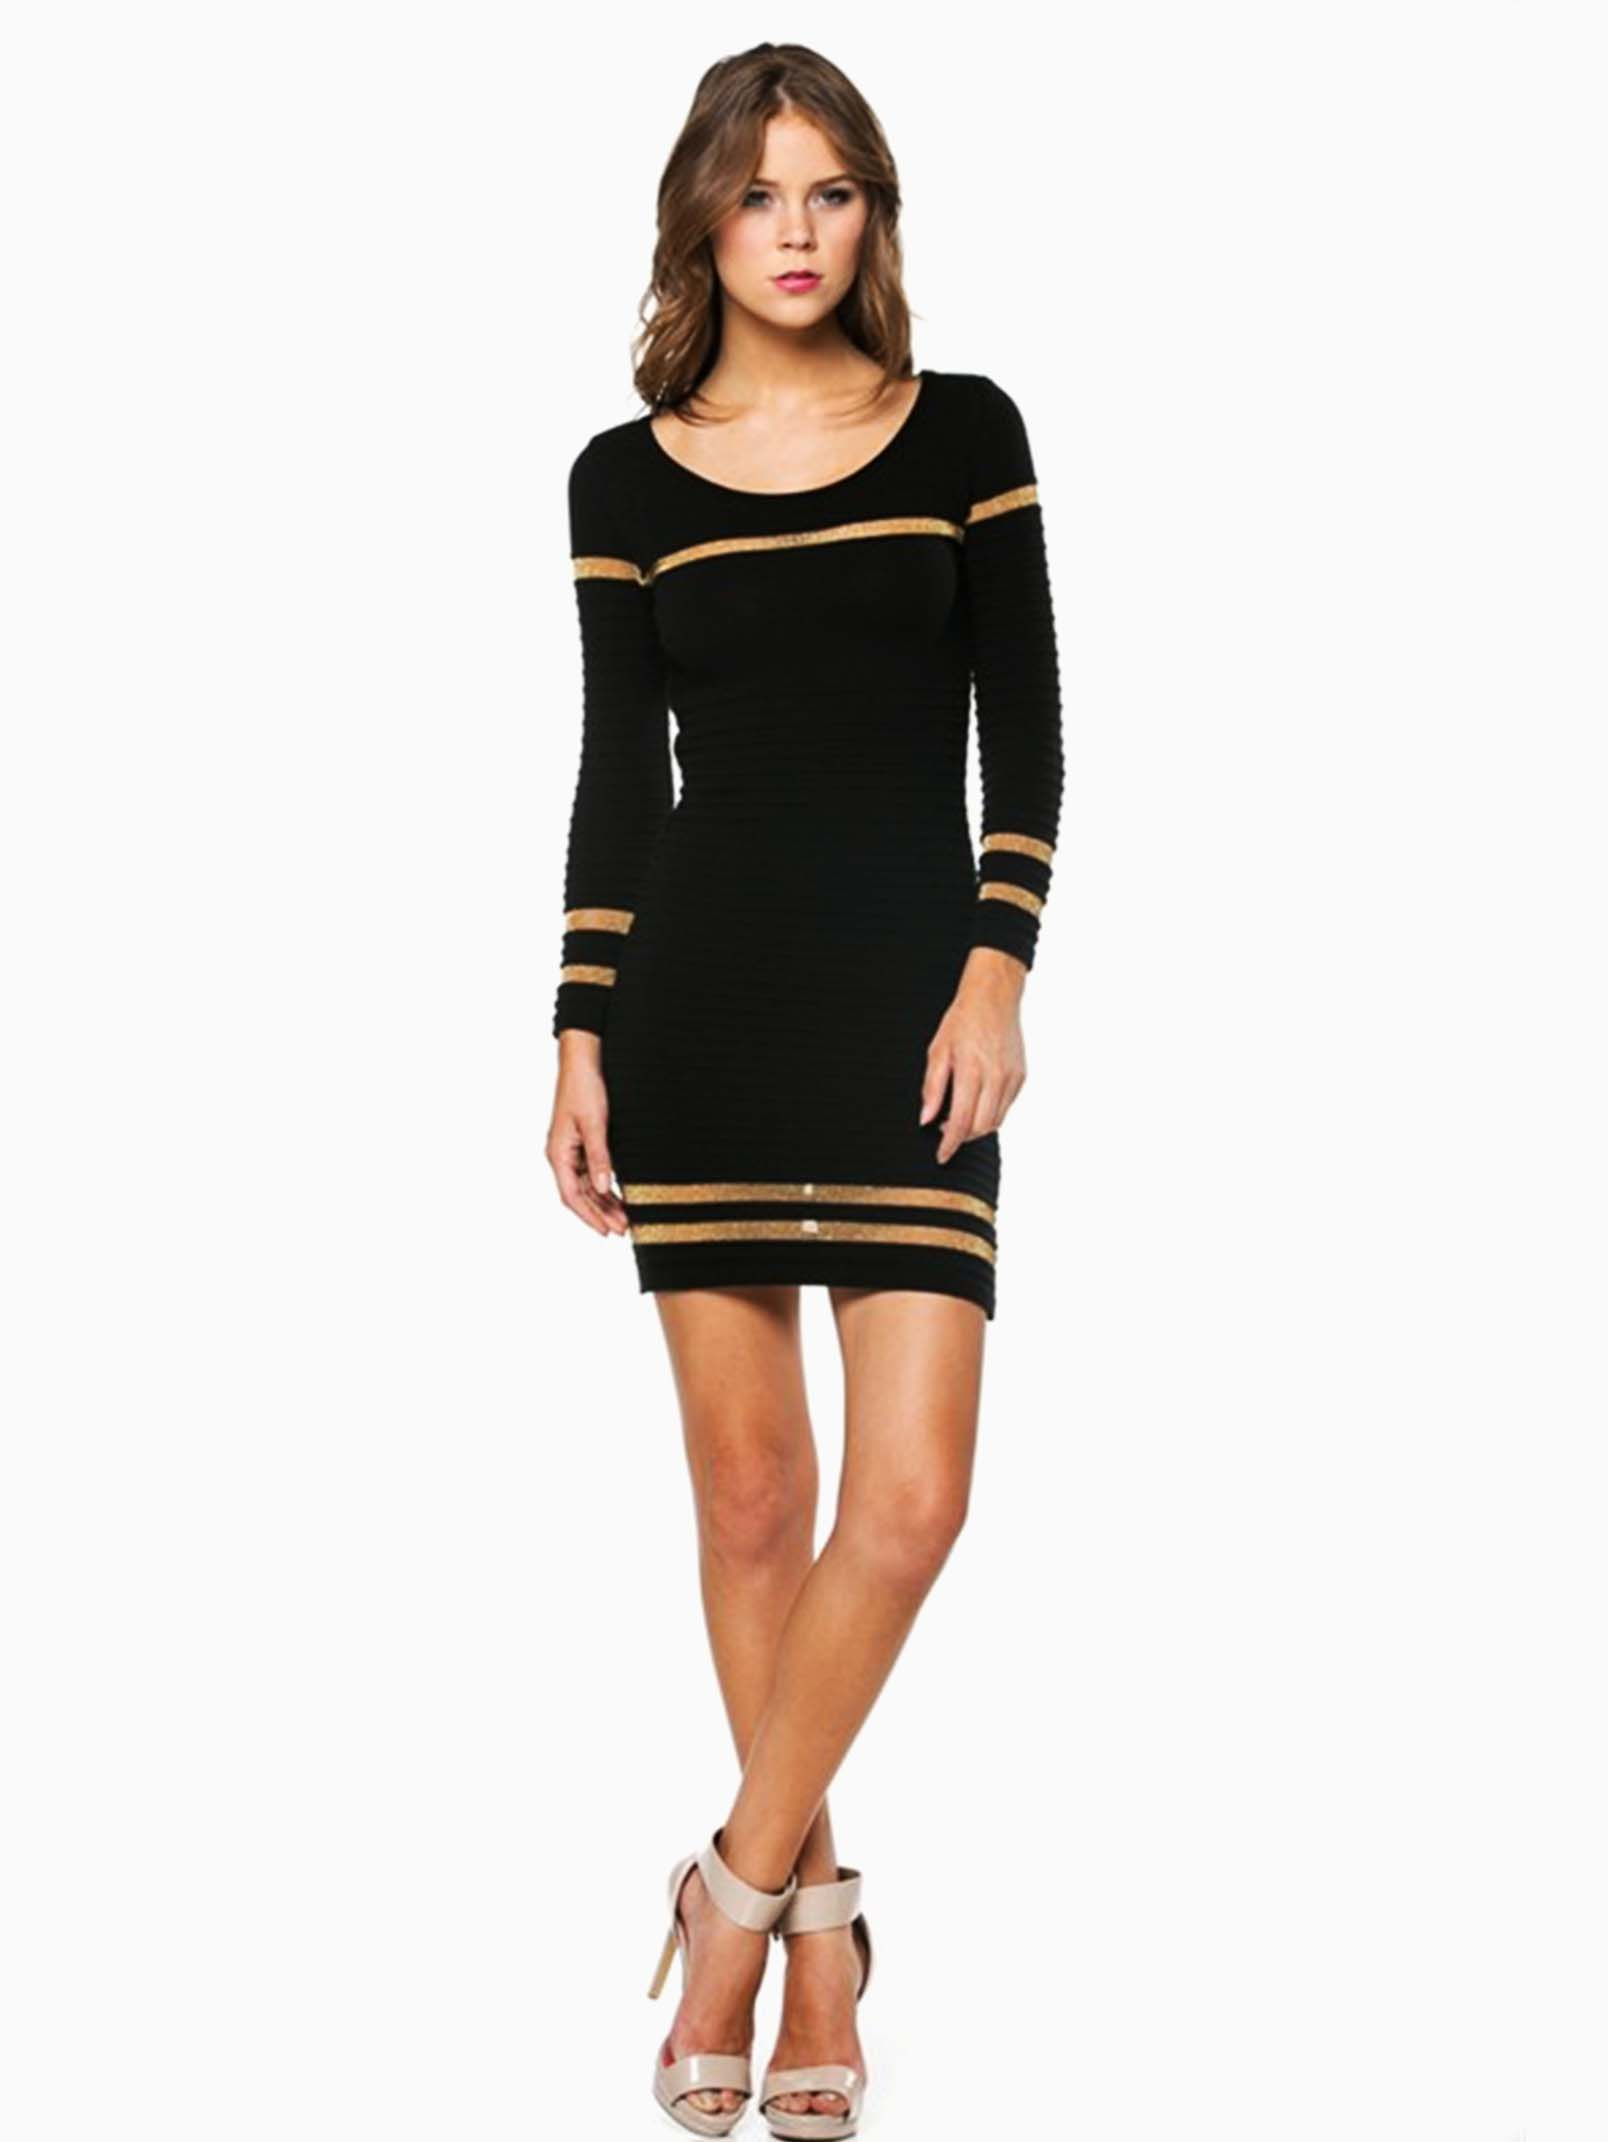 Hera Collection Black Ribbed Shimmer Striped Short Sweater